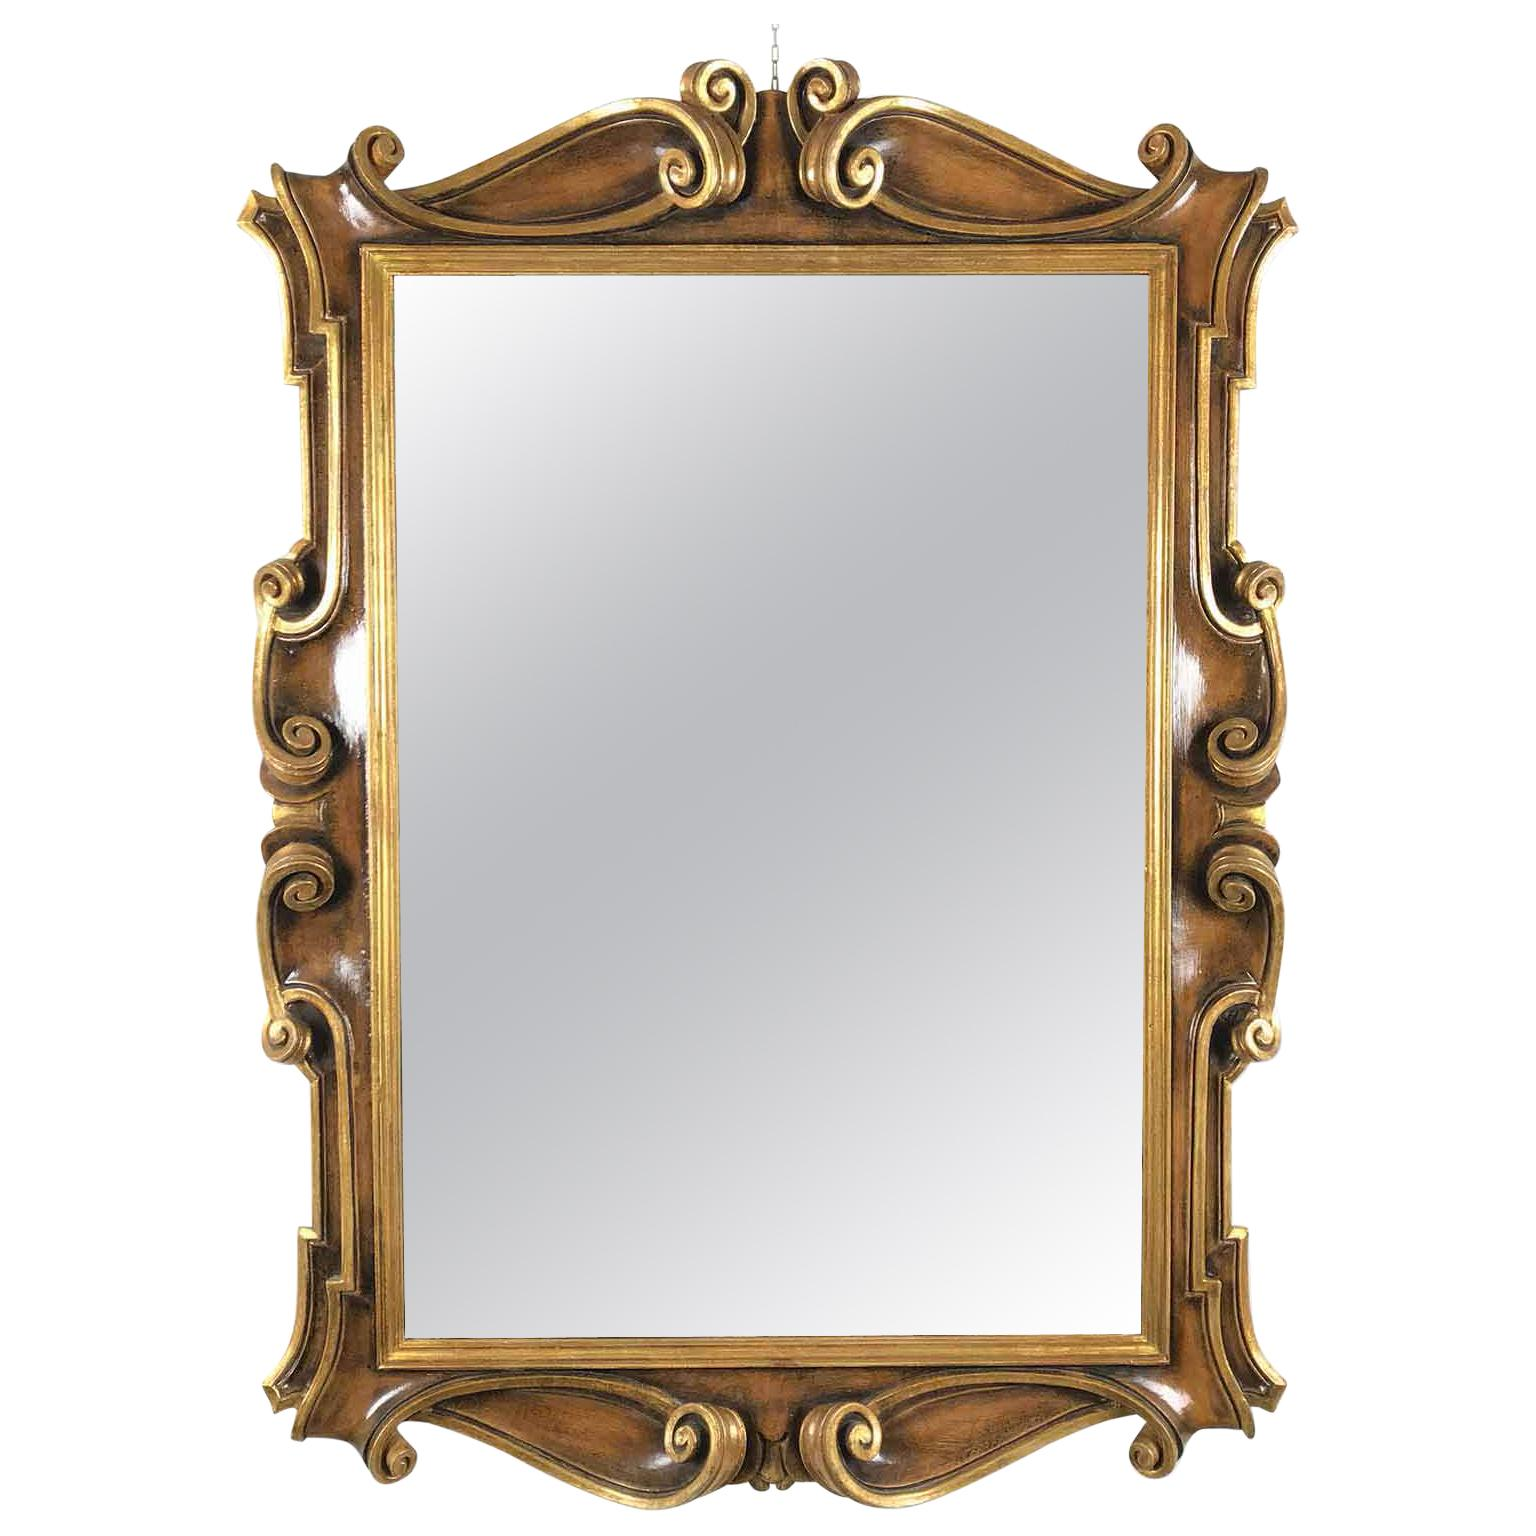 Late 20th Century Italian Molded Wooden and Gilt Mirror by Chelini Firenze